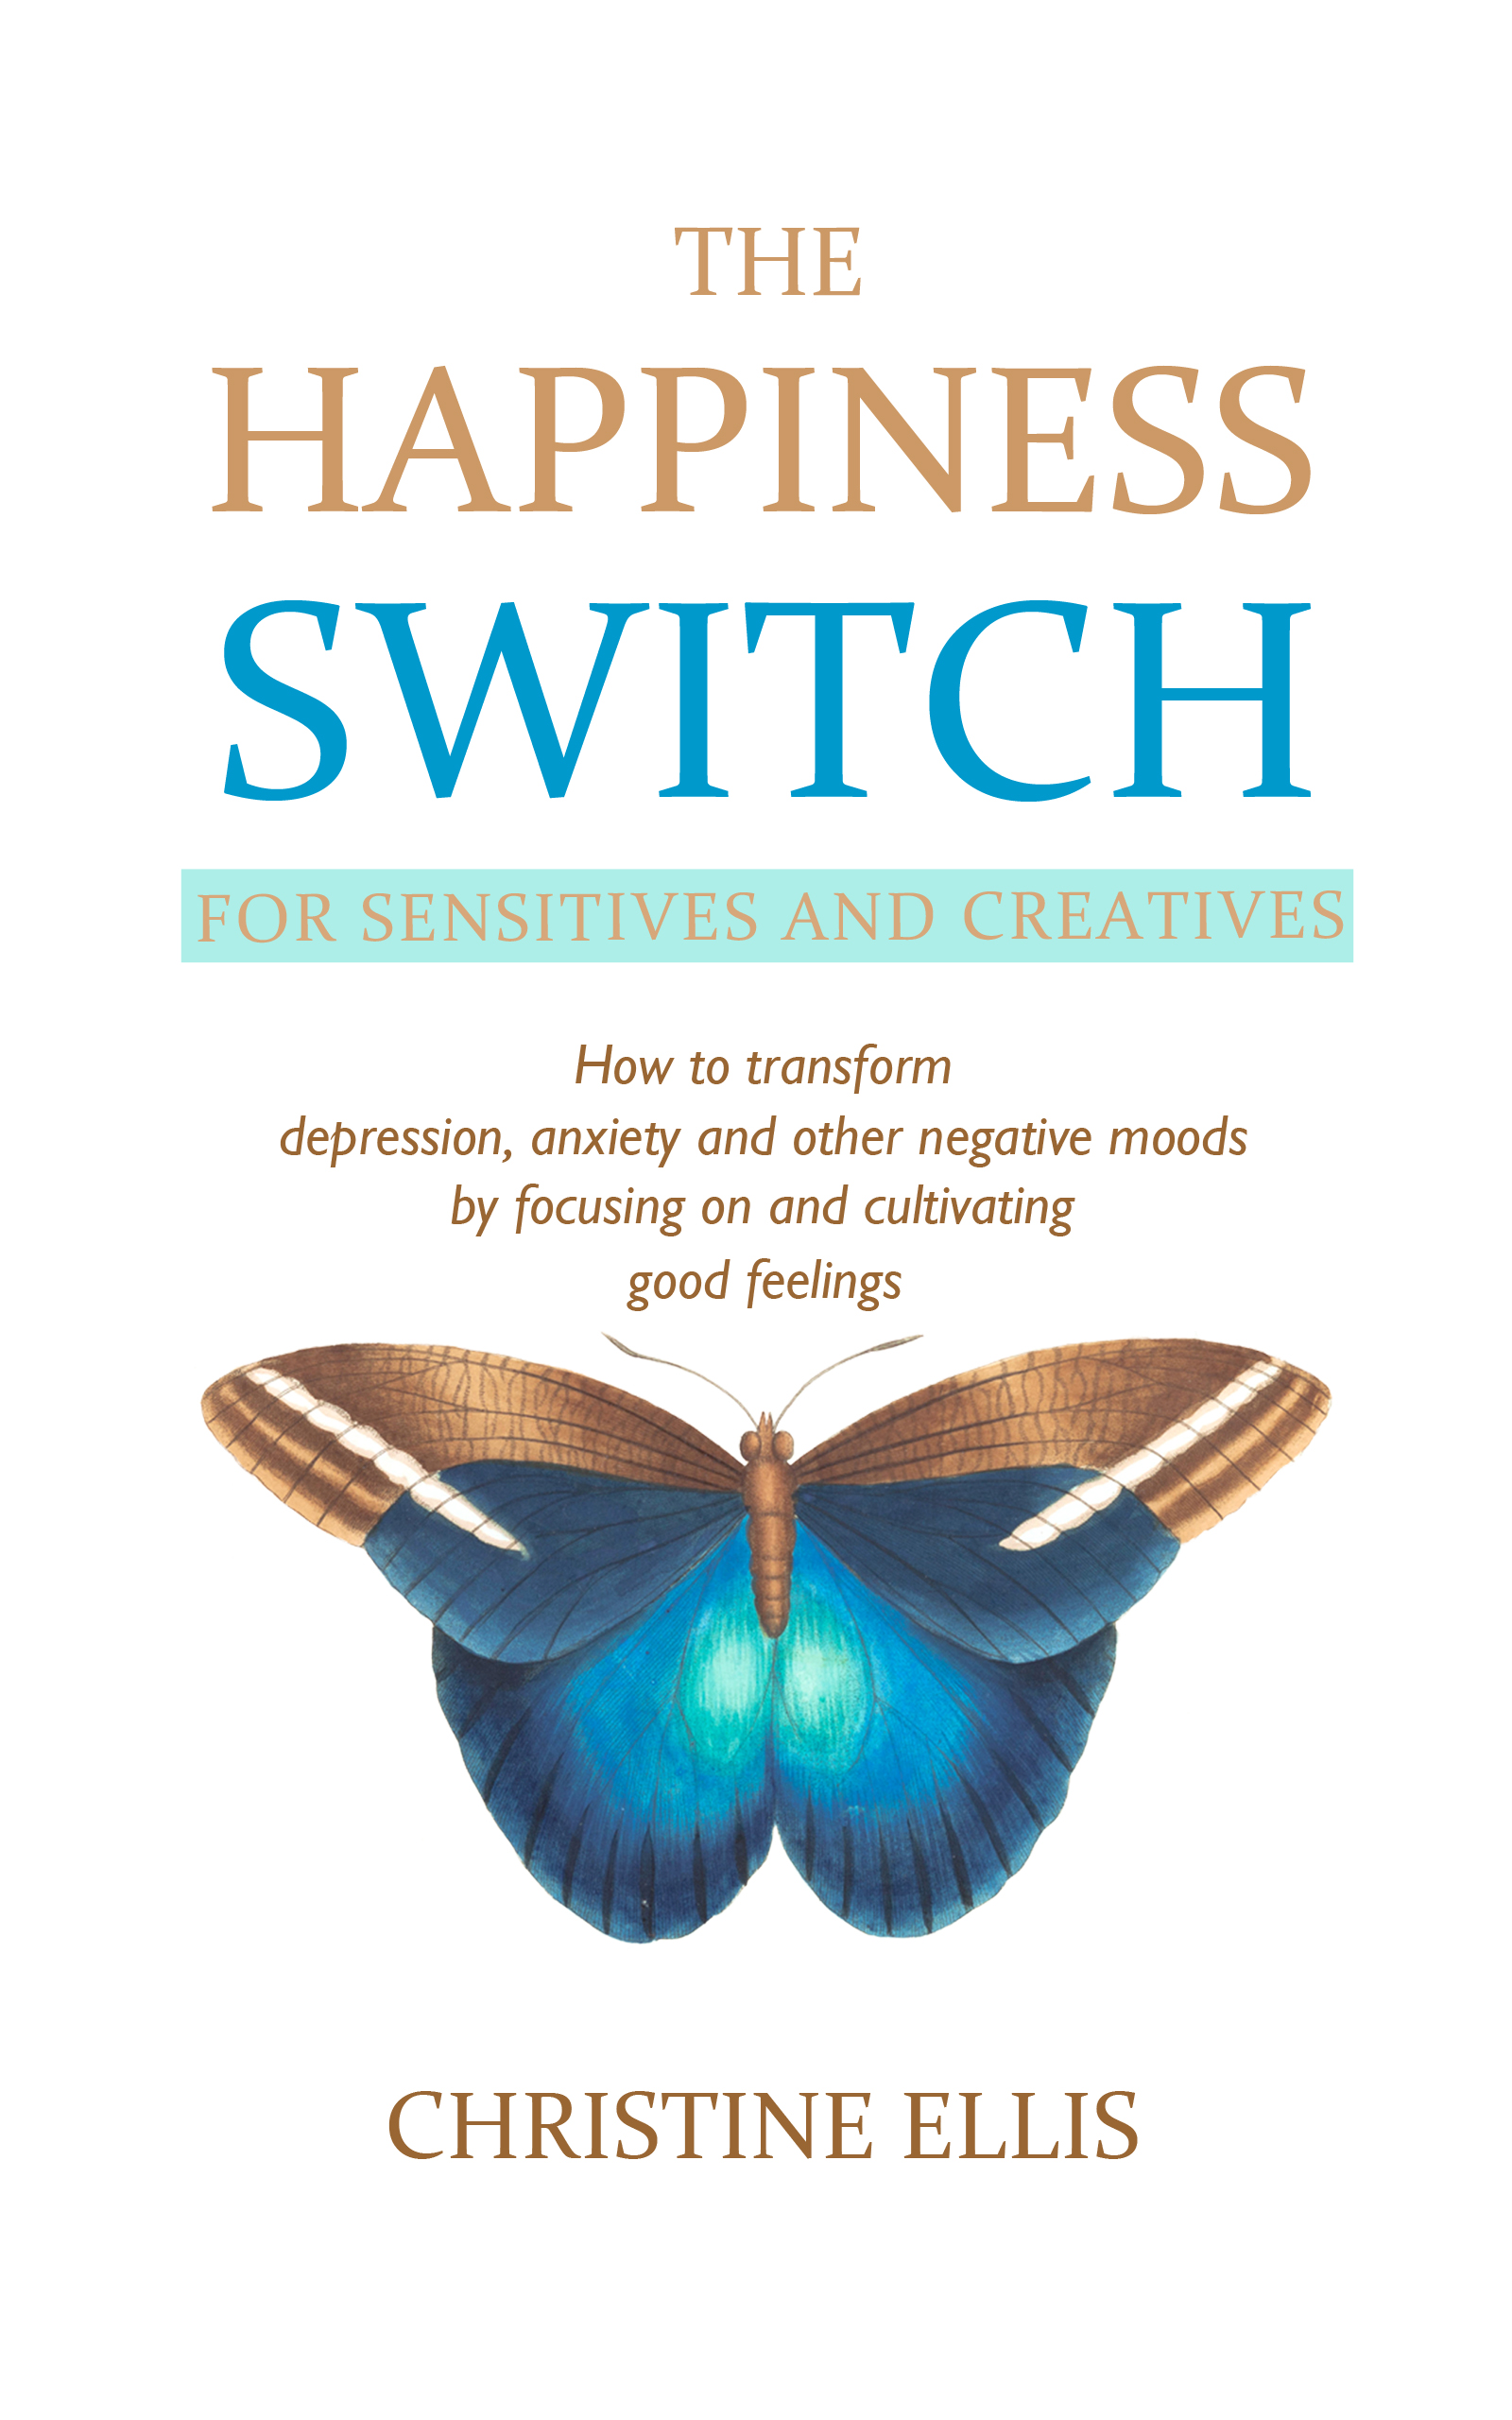 the happiness switch for sensitives and creatives how to transform depression anxiety and other negative moods mental health mood disorders highly sensitive person